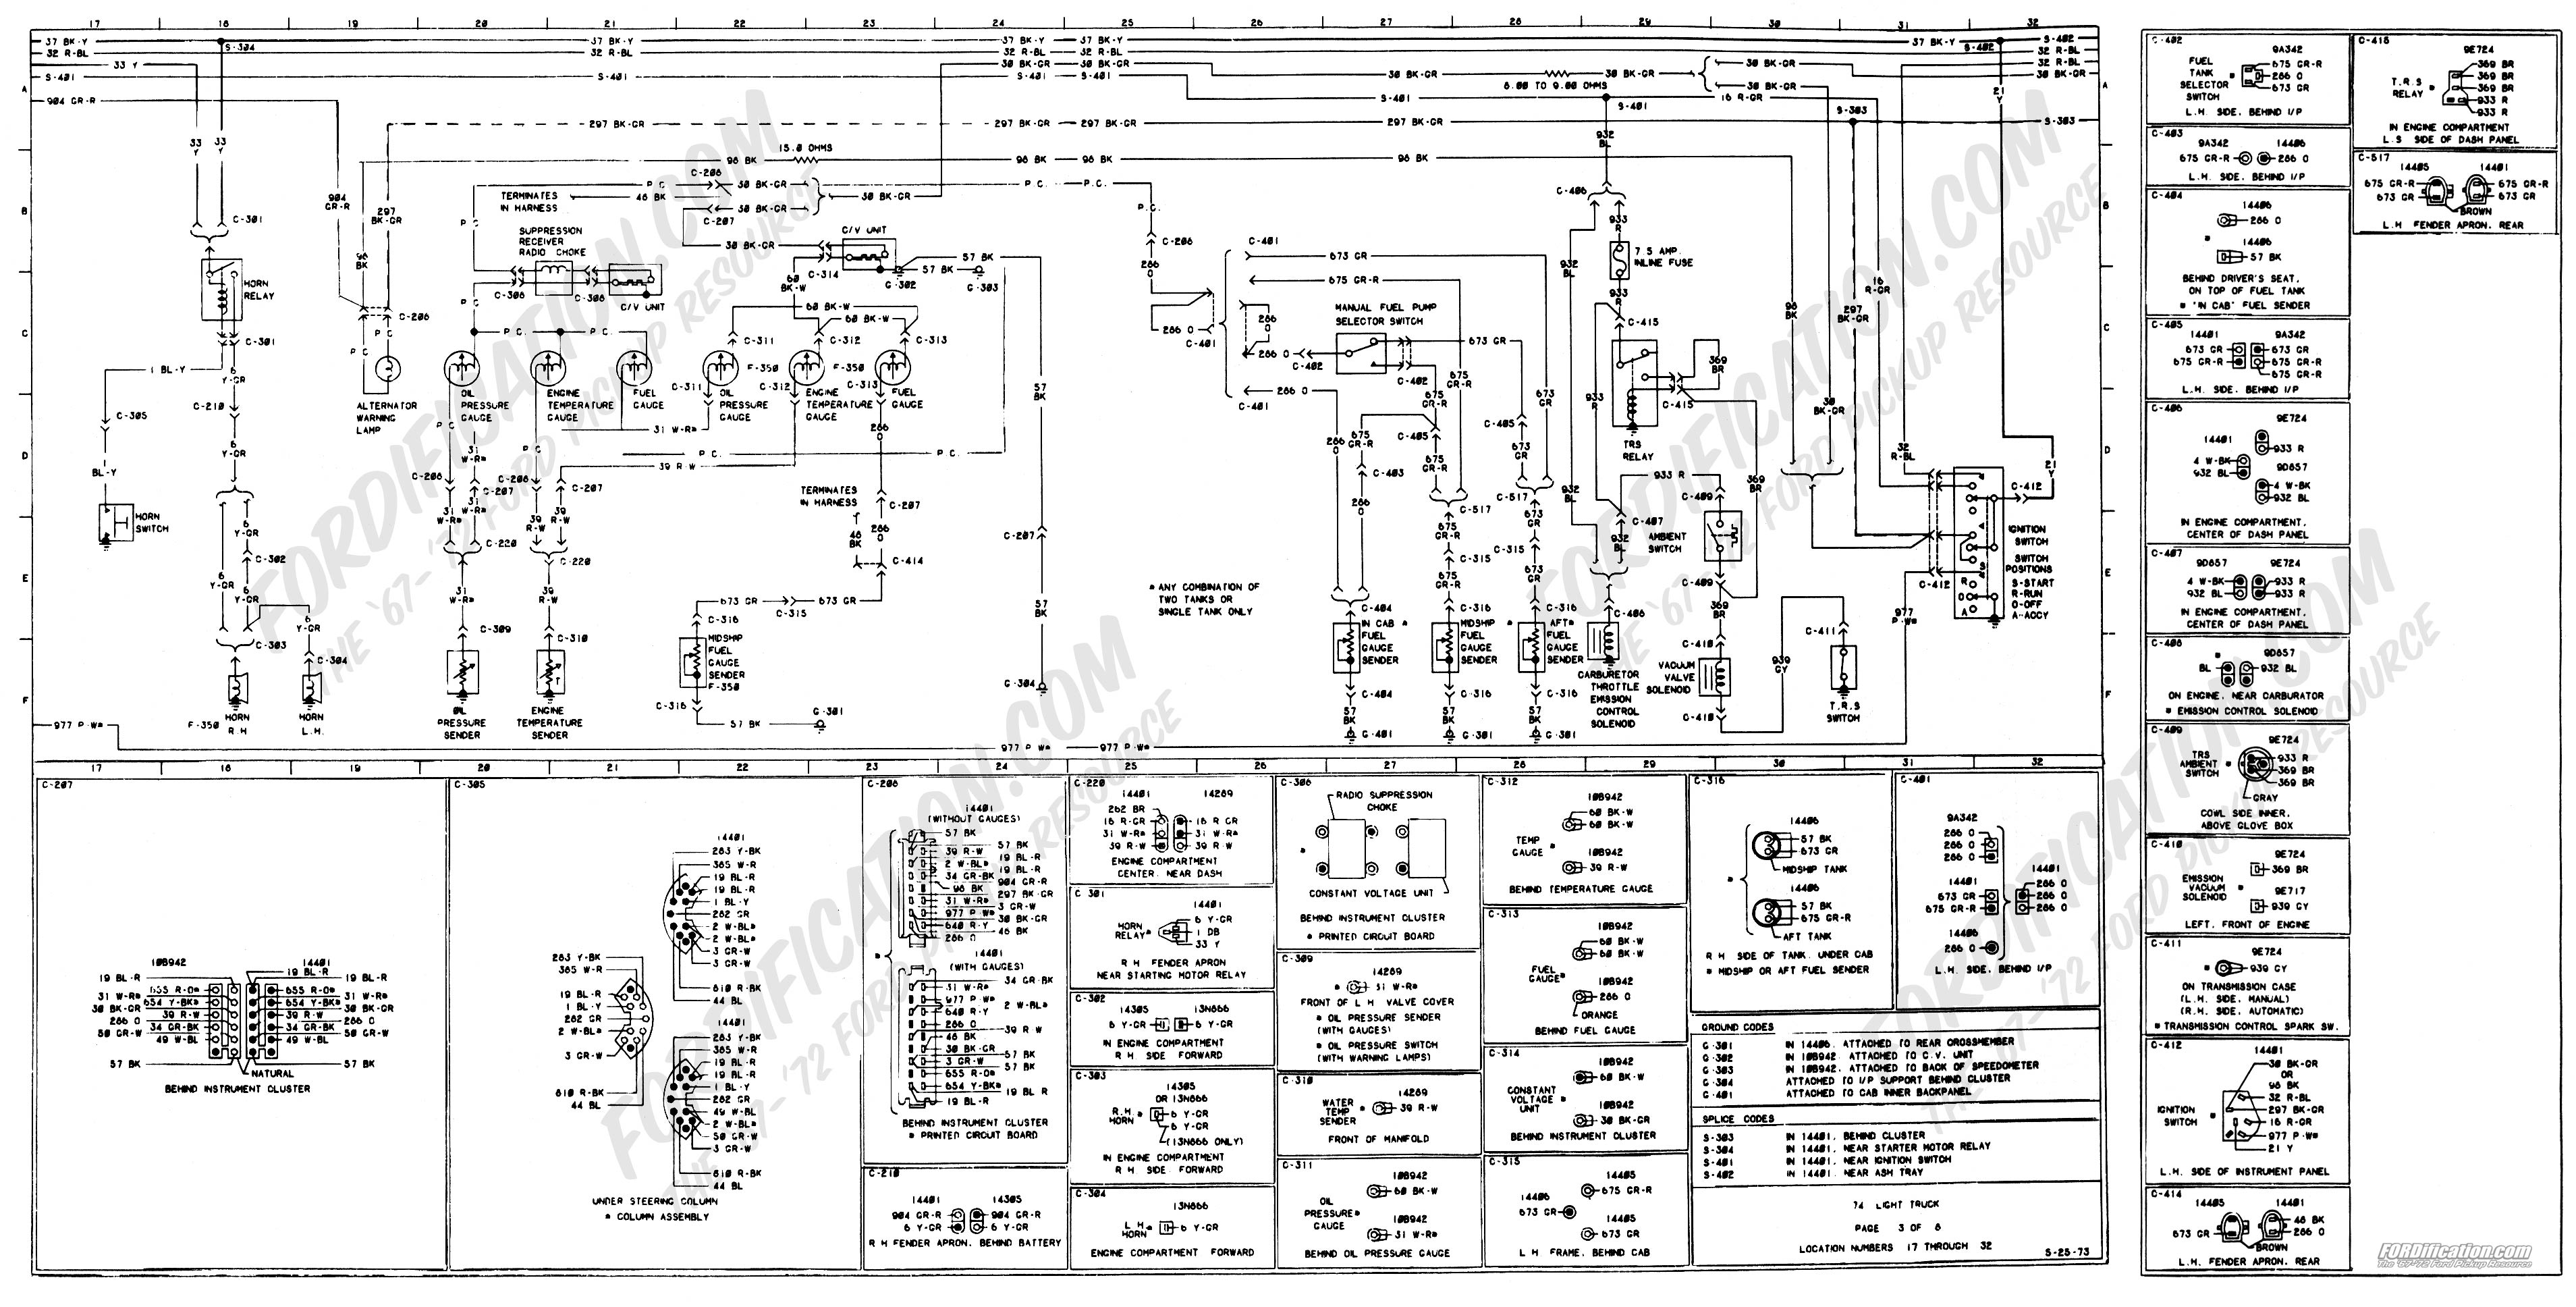 wiring_74master_3of8 1973 1979 ford truck wiring diagrams & schematics fordification net 1971 ford f250 wiring diagram at love-stories.co